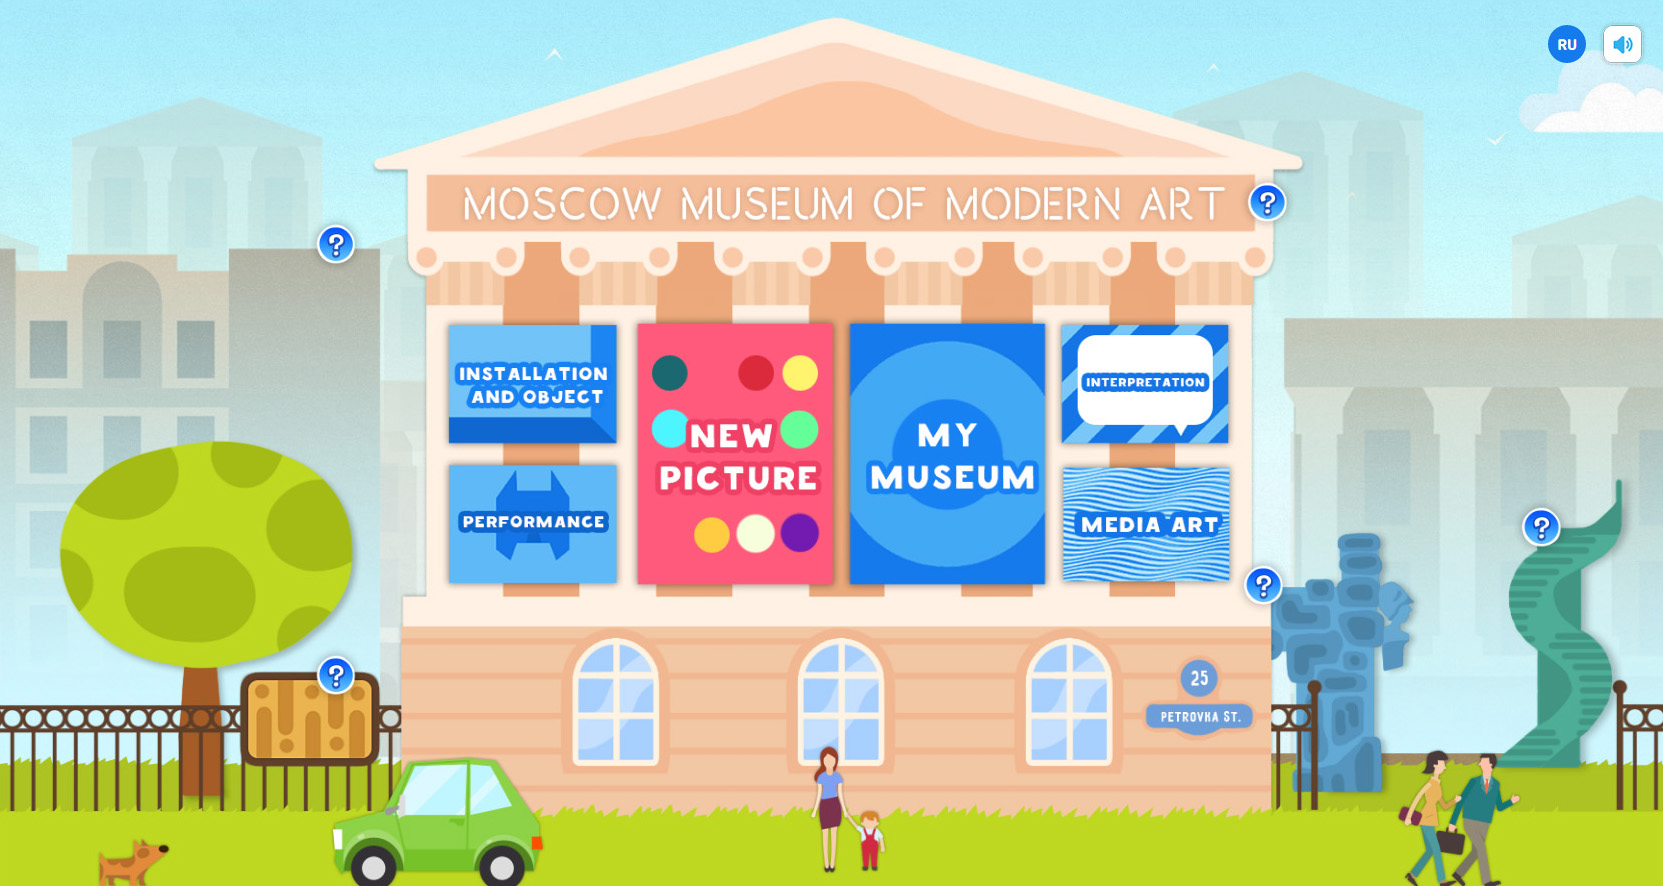 Opening screen showing the facade of the main building of the Moscow Museum of Modern Art at Petrovka 25